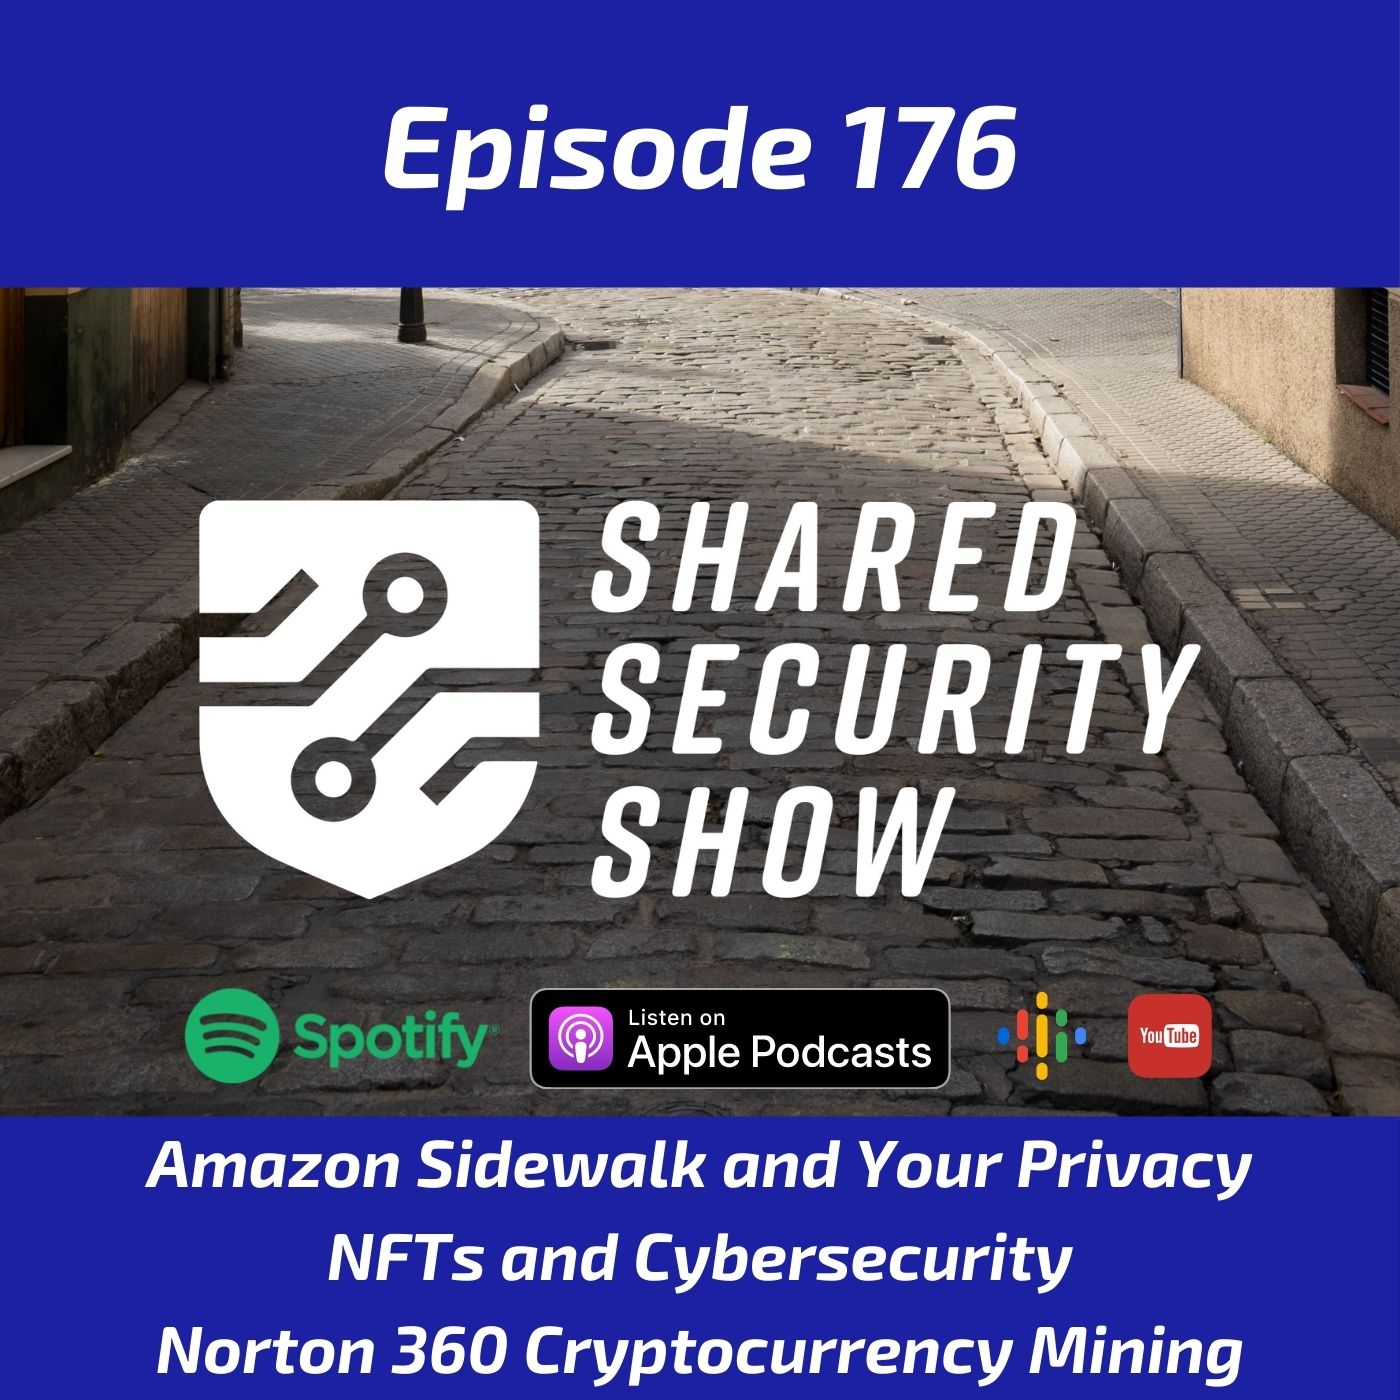 Amazon Sidewalk, NFTs and Cybersecurity, Norton 360 Cryptocurrency Mining